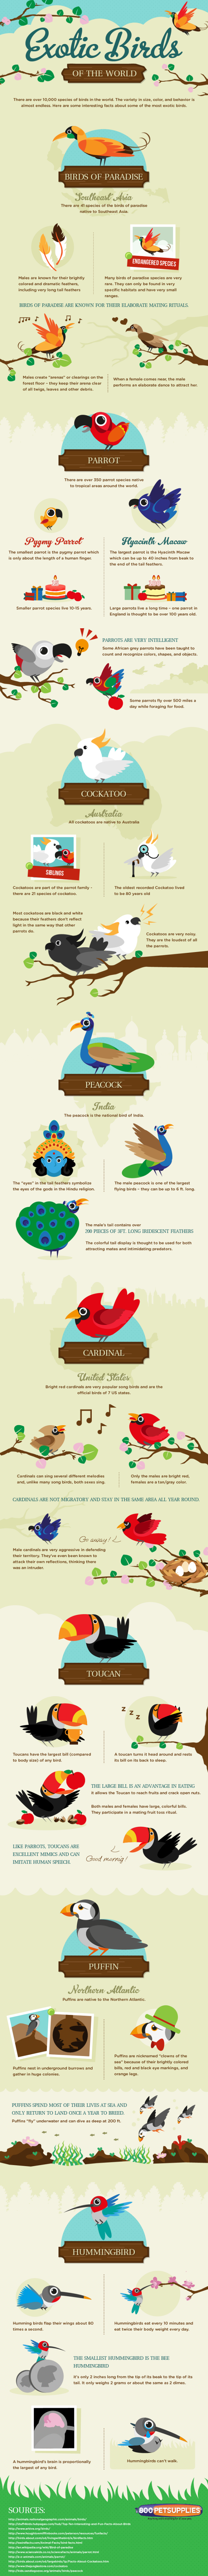 18. The most exotic bird